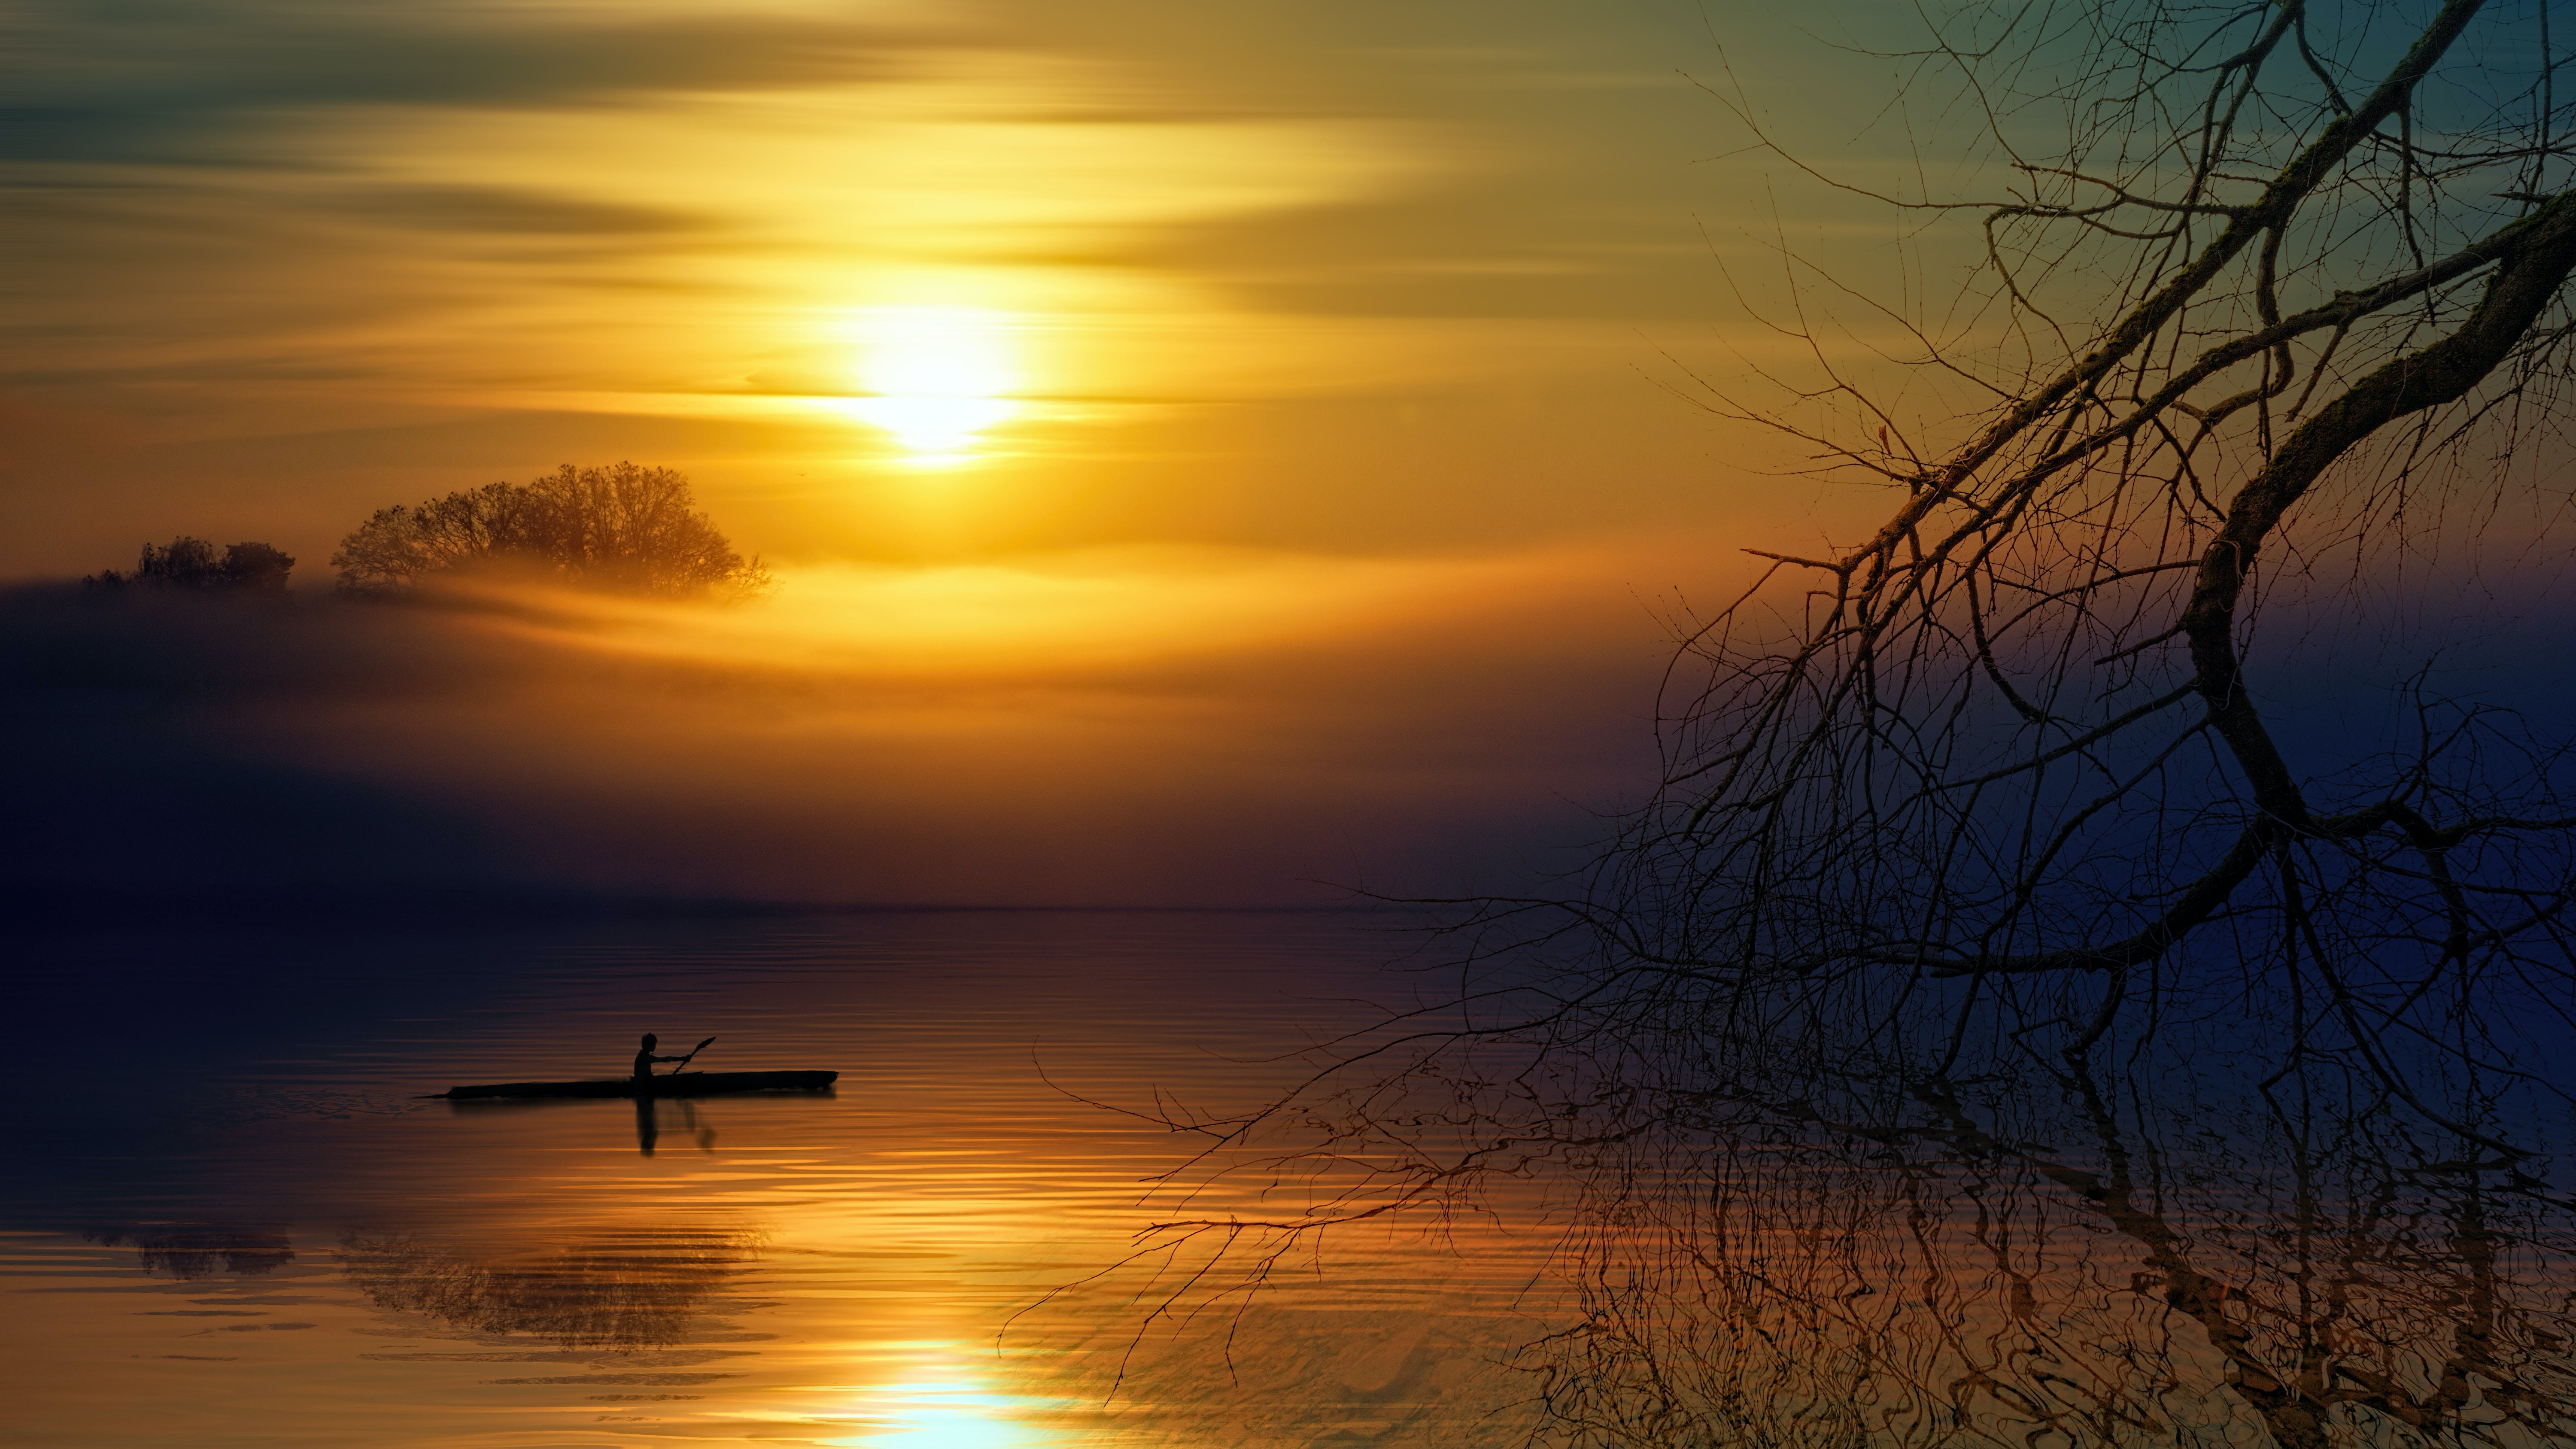 Man Riding Boat during Sunset